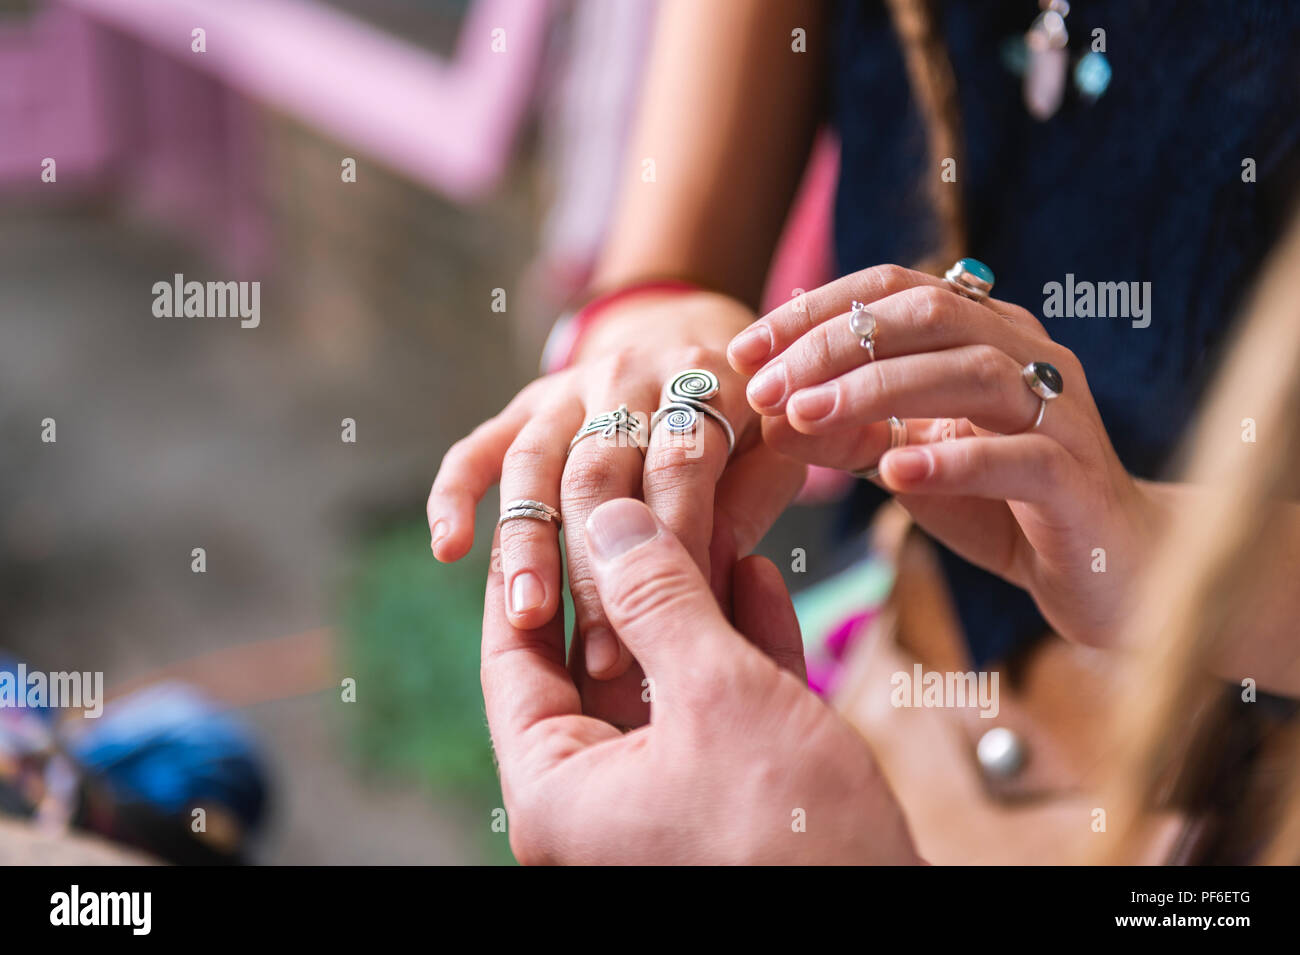 Hand Holding Rings Stock Photos & Hand Holding Rings Stock Images ...